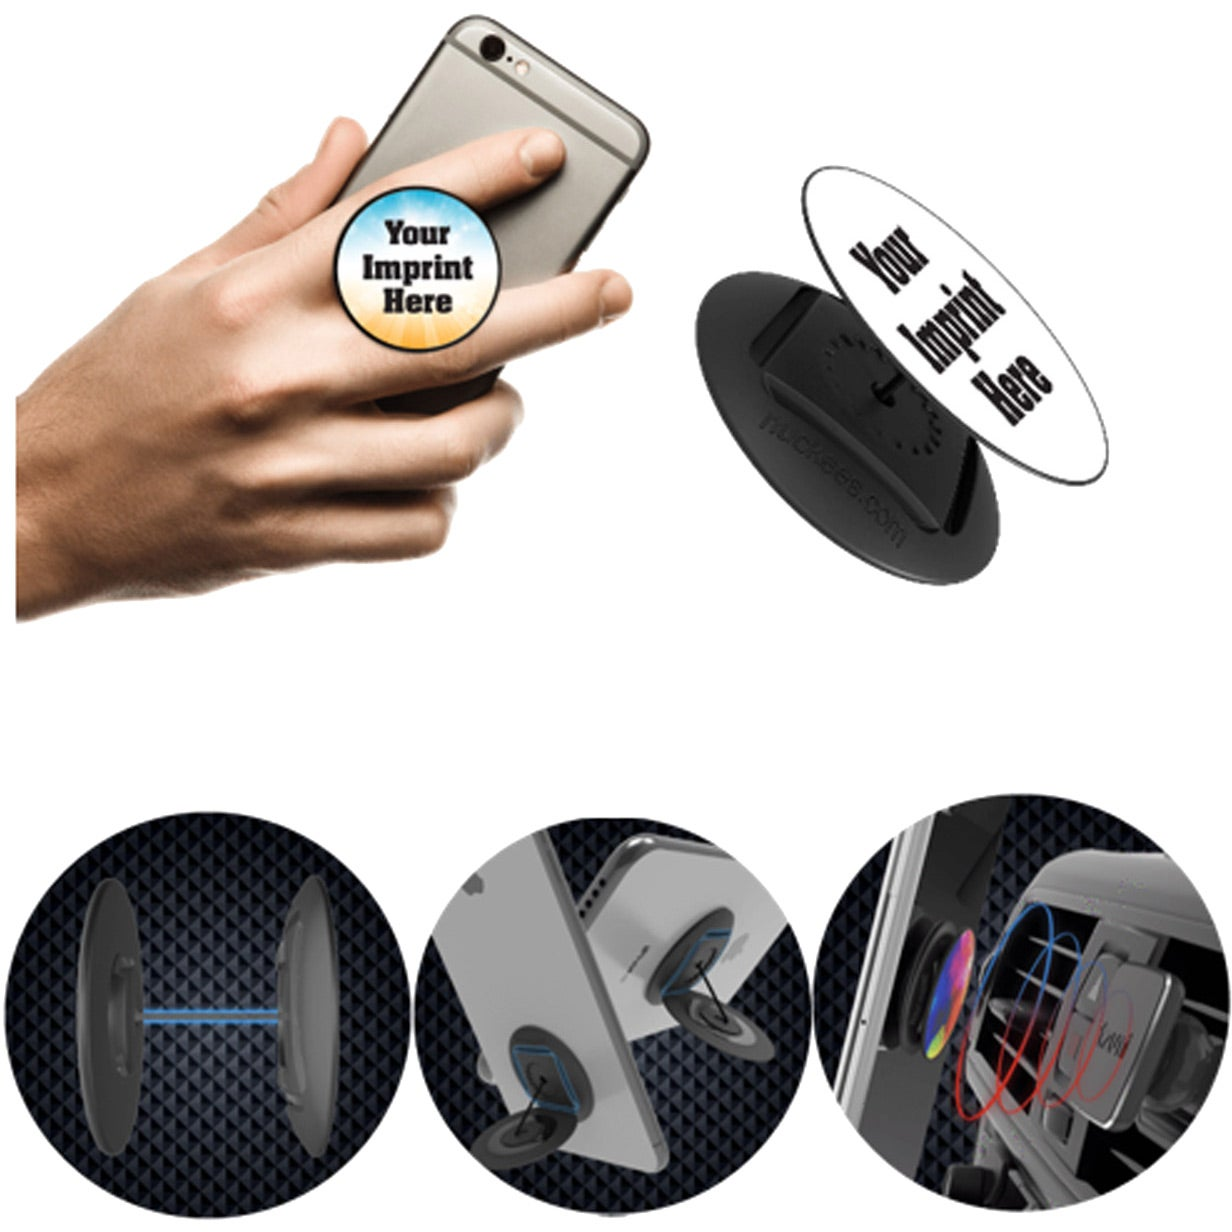 Nuckees Smartphone Grip Stand with Snug-Hug Tech